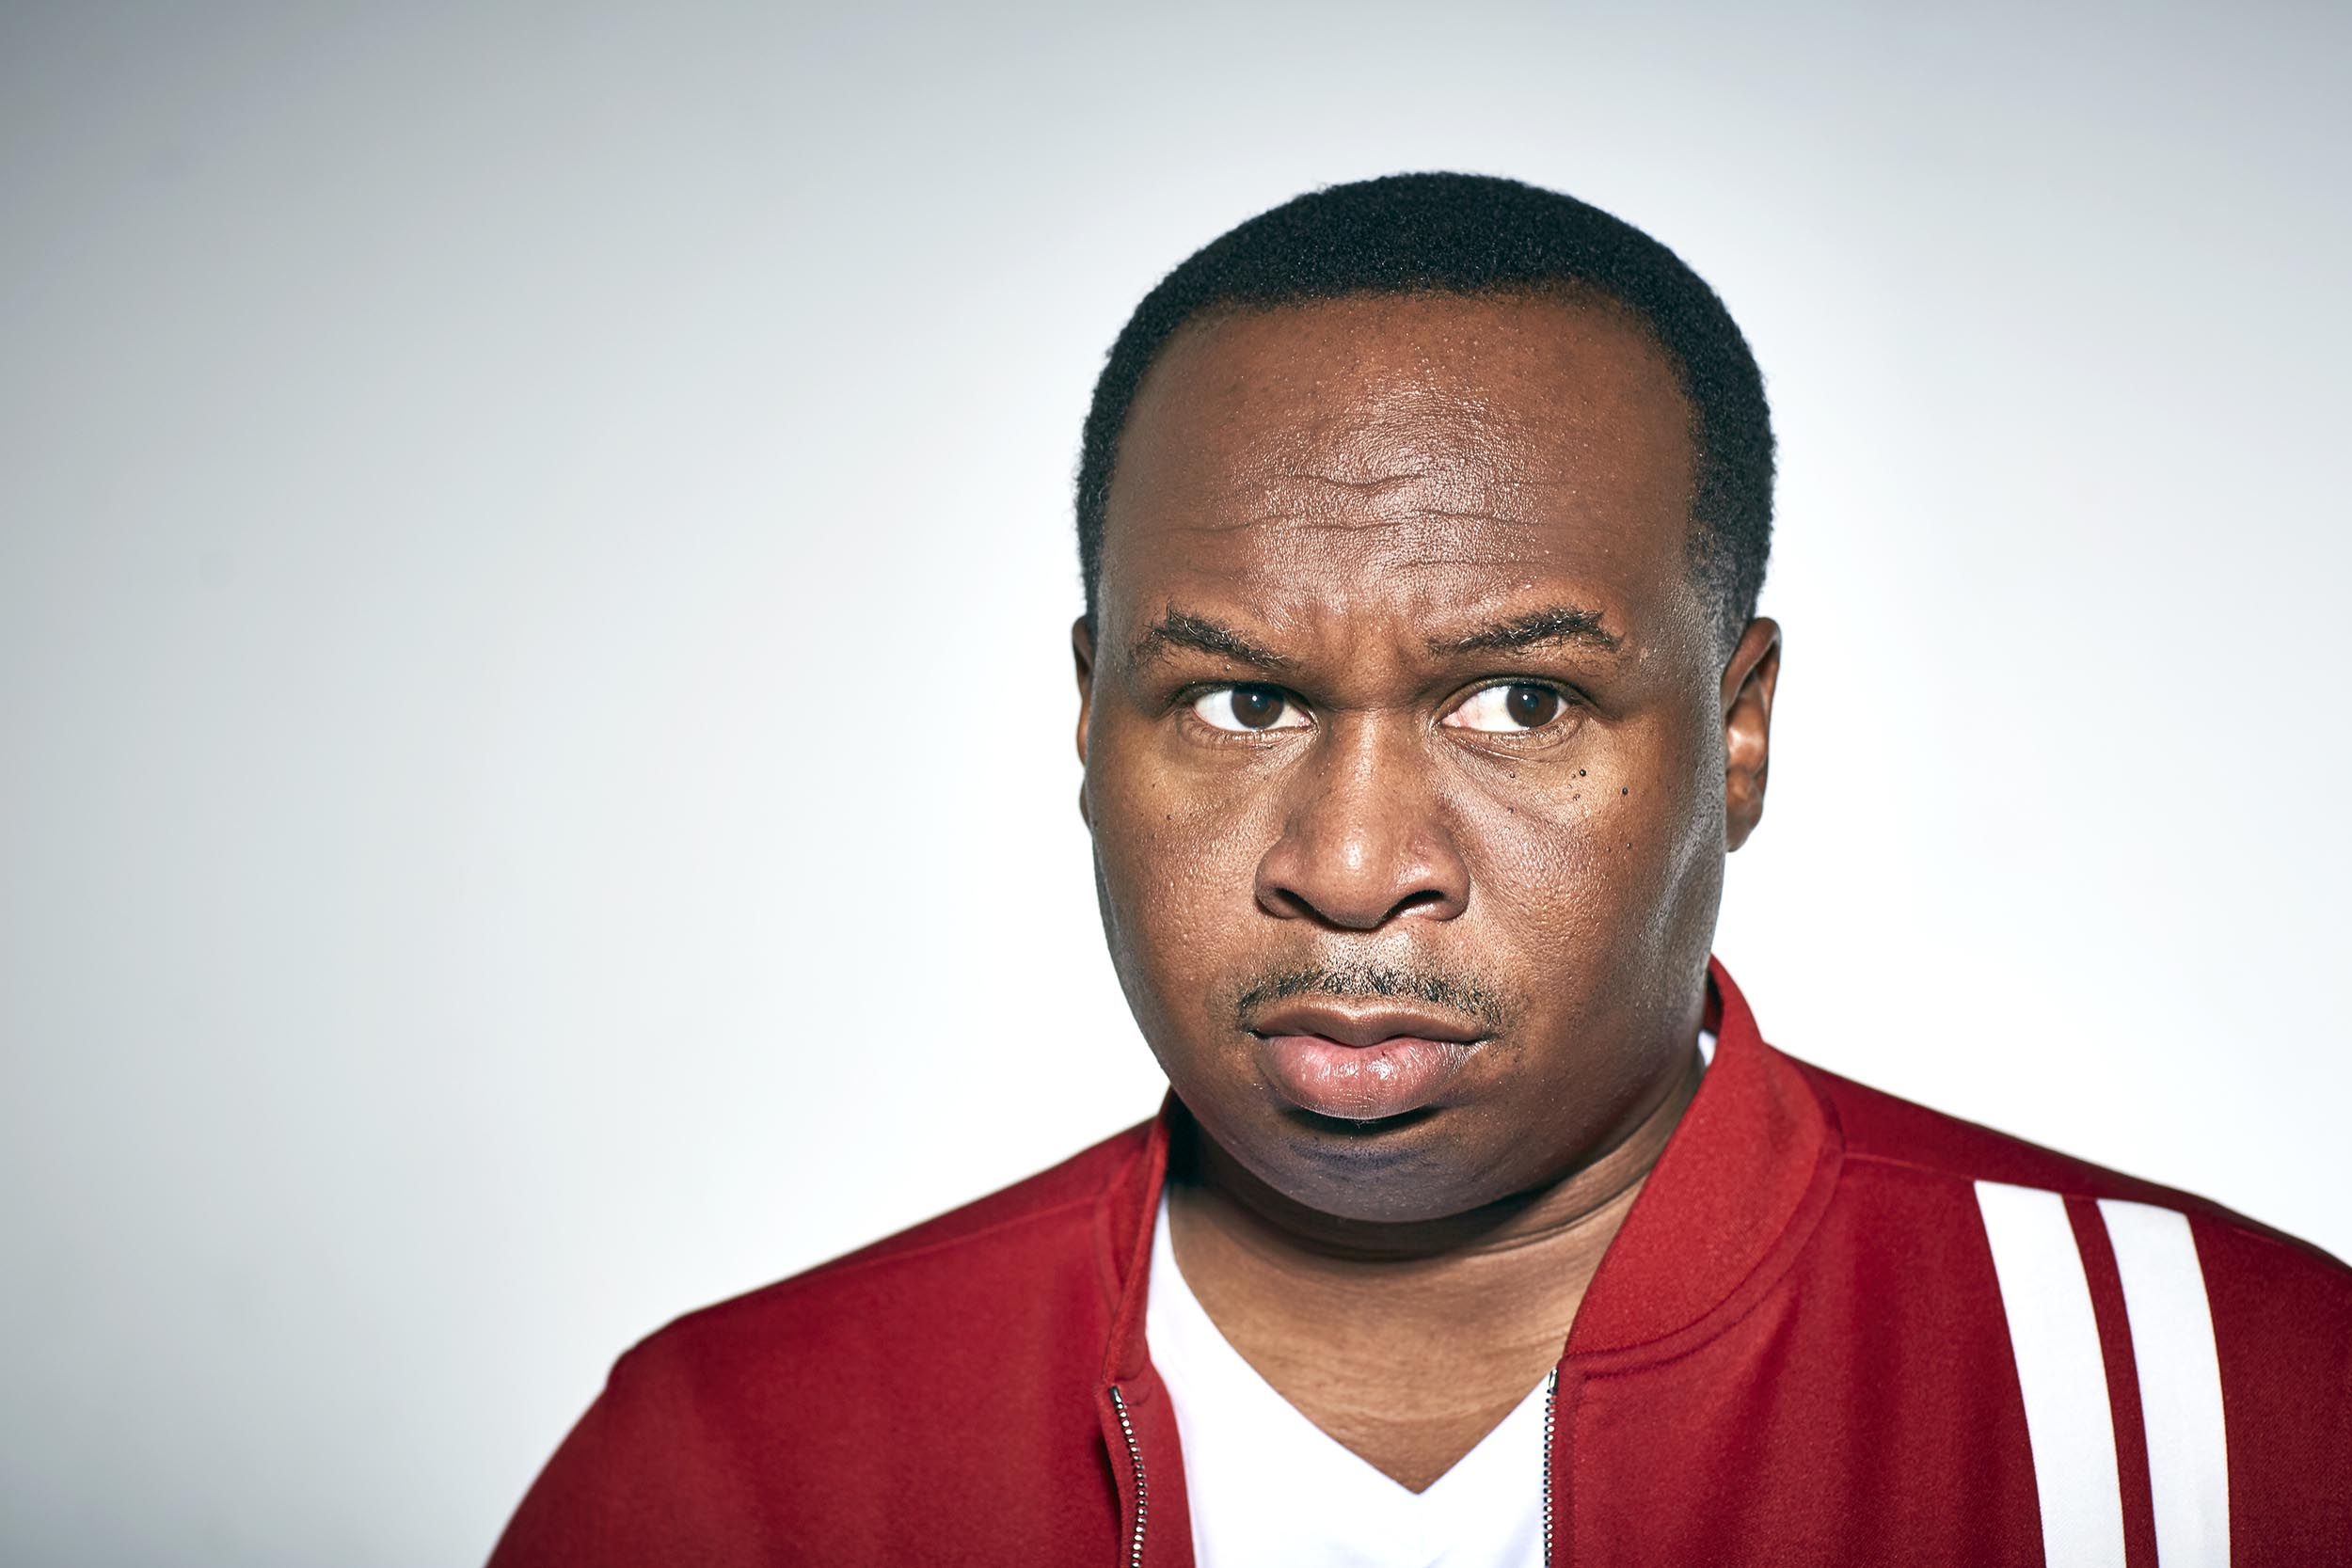 """After gaining the courage to get on stage, you'll need the competence to stay there! Don't think about it twice! Take the class and be on your way!""-ROY WOOD JR., International Headliner - LEARN MORE →"